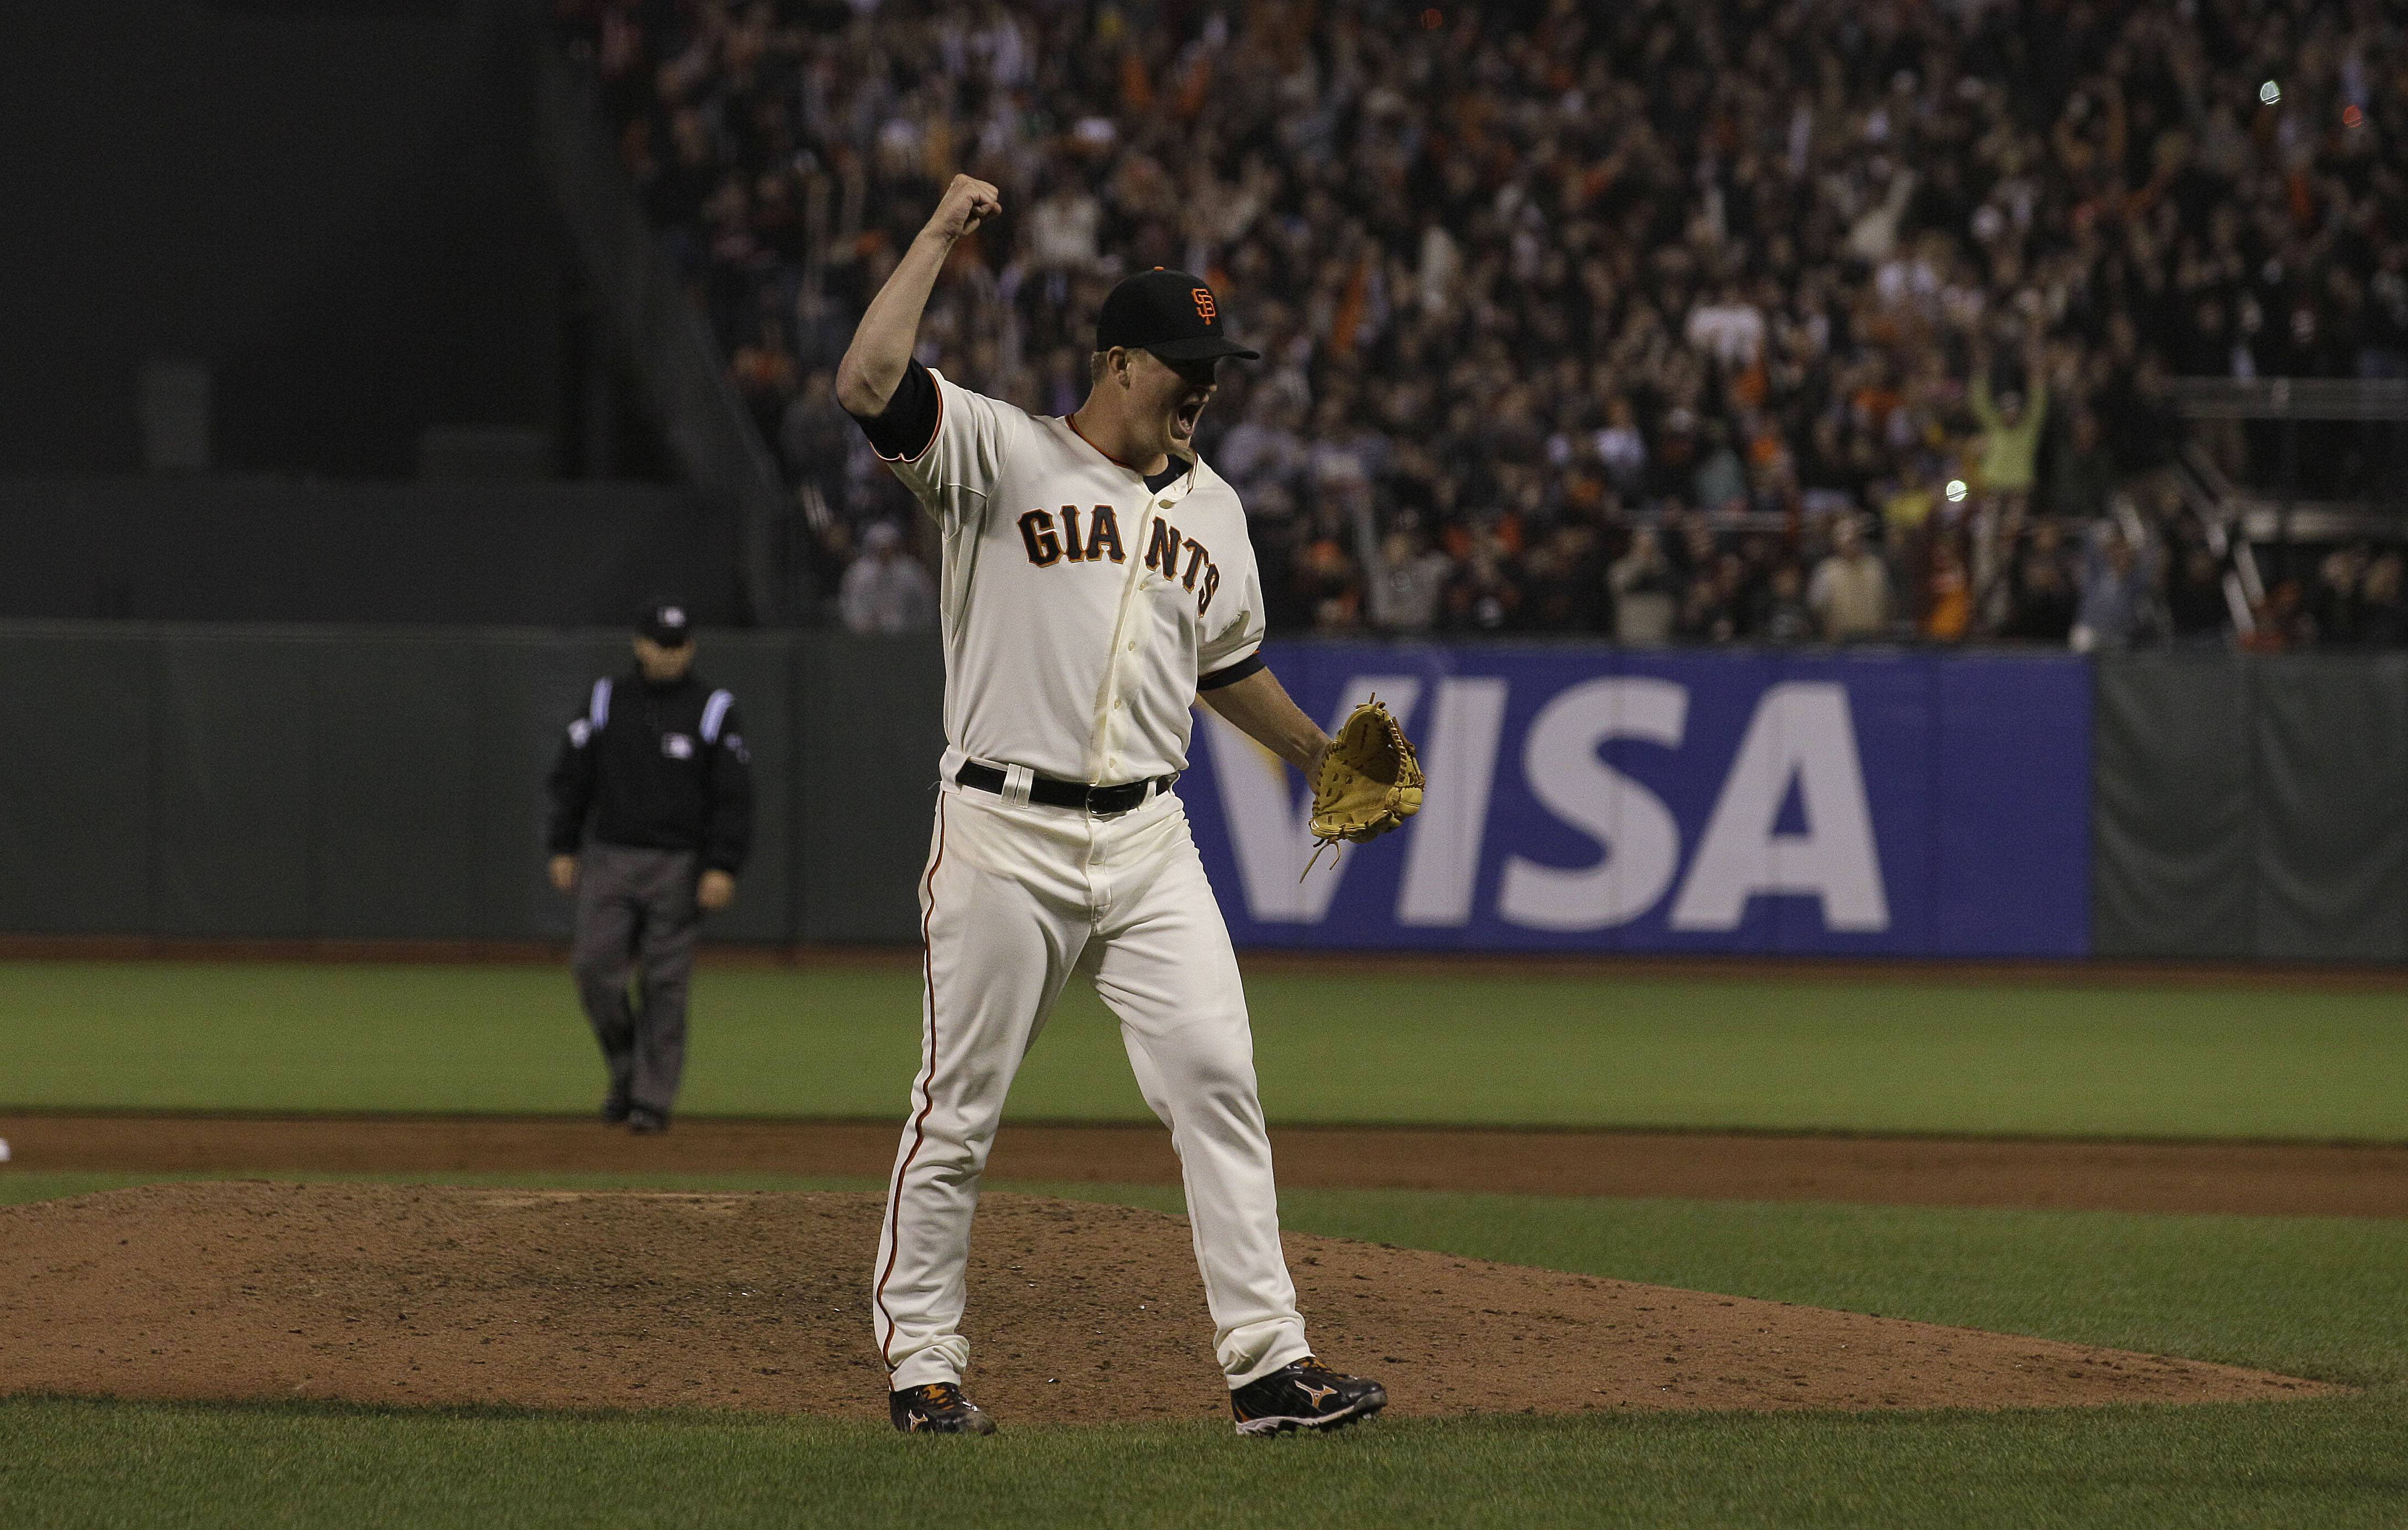 San Francisco Giants pitcher Matt Cain celebrates after recording the final out Wednesday night.